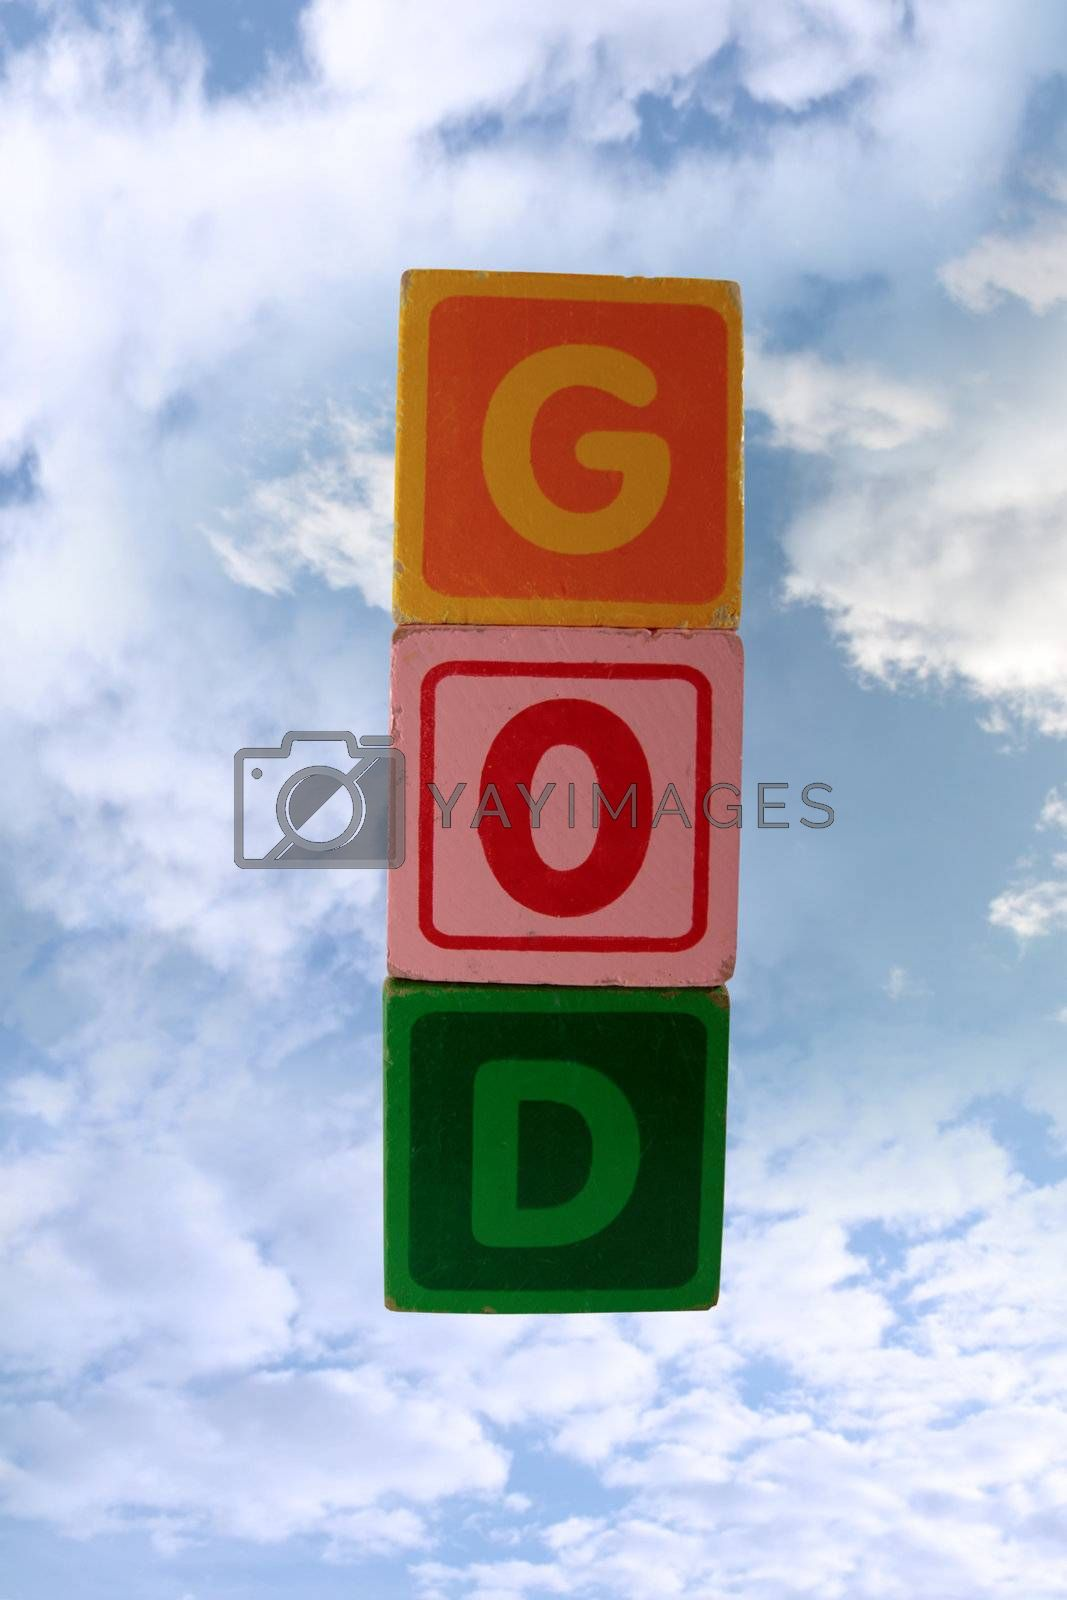 Royalty free image of play blocks that spell god in sky with clipping path by morrbyte